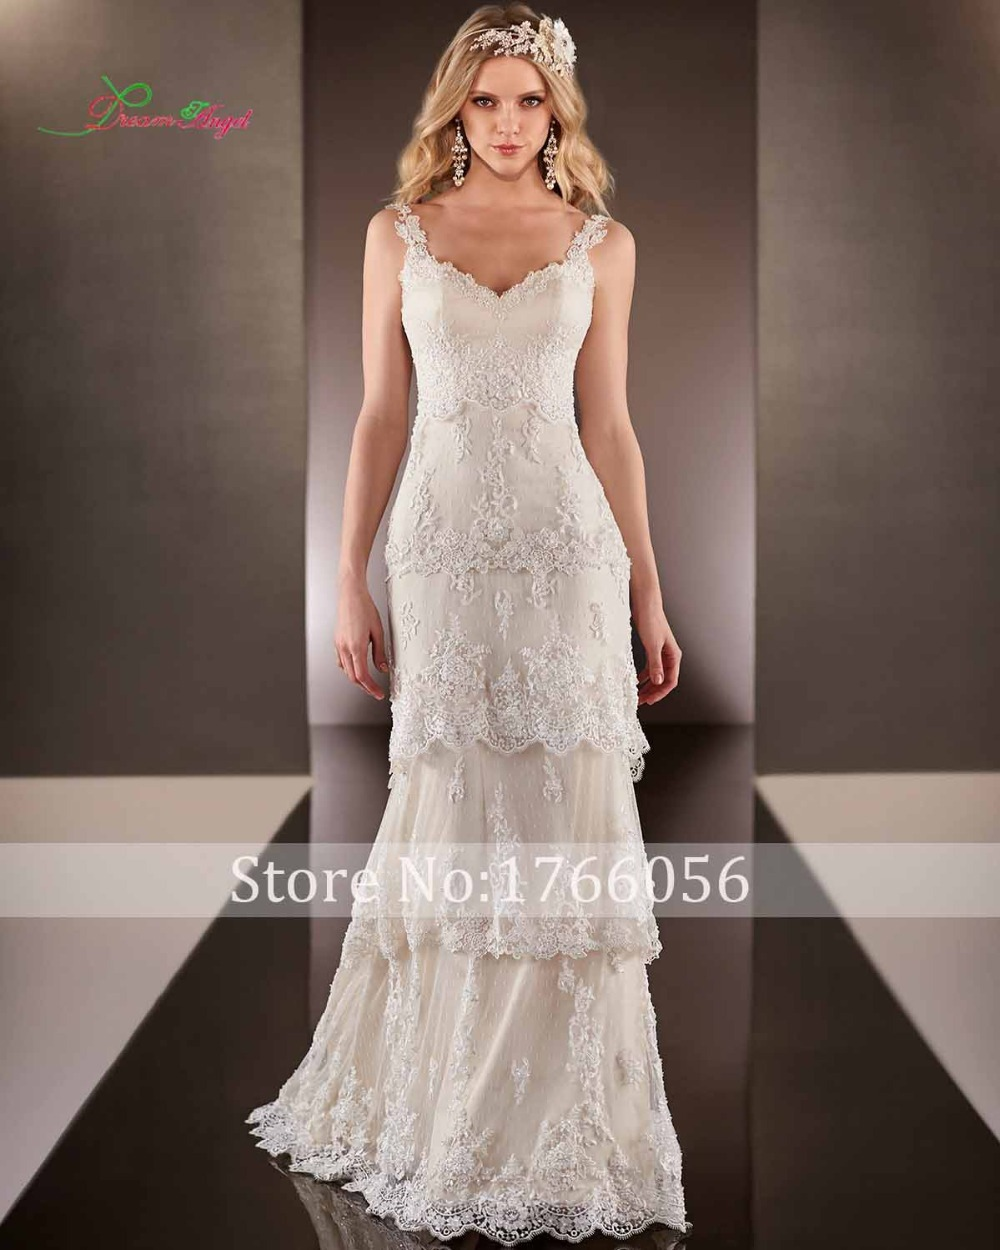 New Fashionable Dependent Tiered Mermaid Wedding Dre...